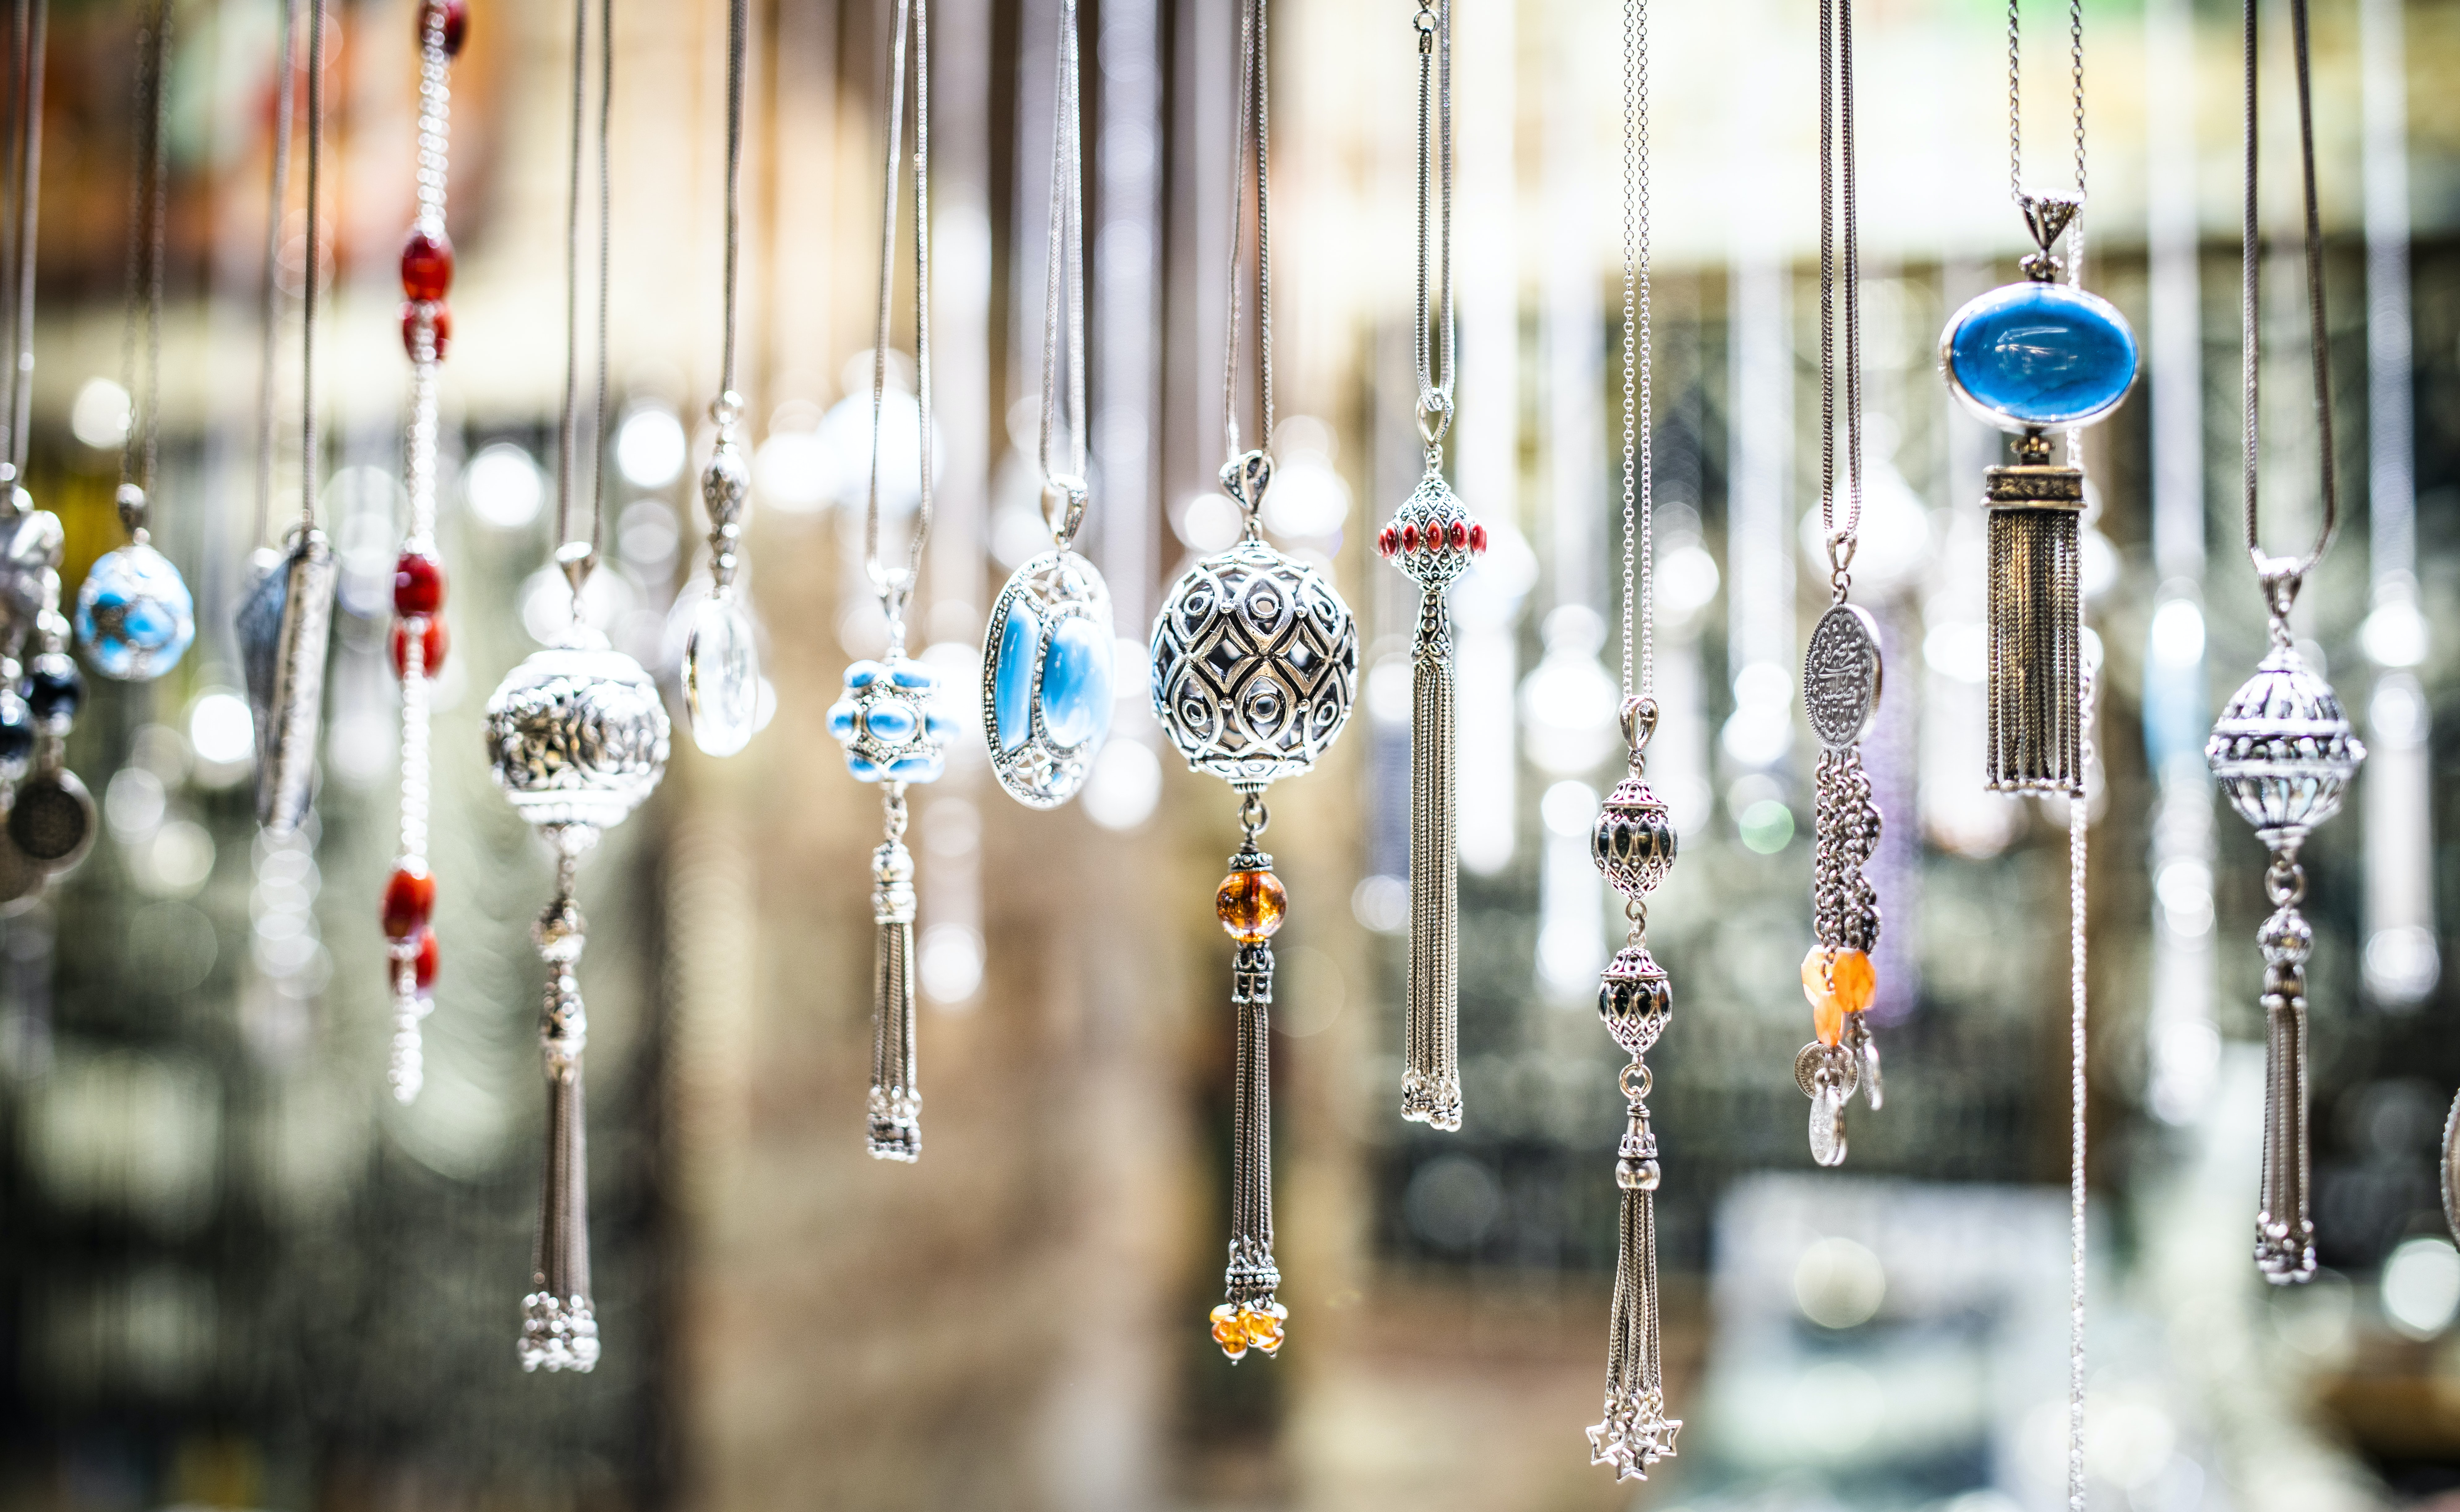 focus photography of assorted-color hanging decor lot